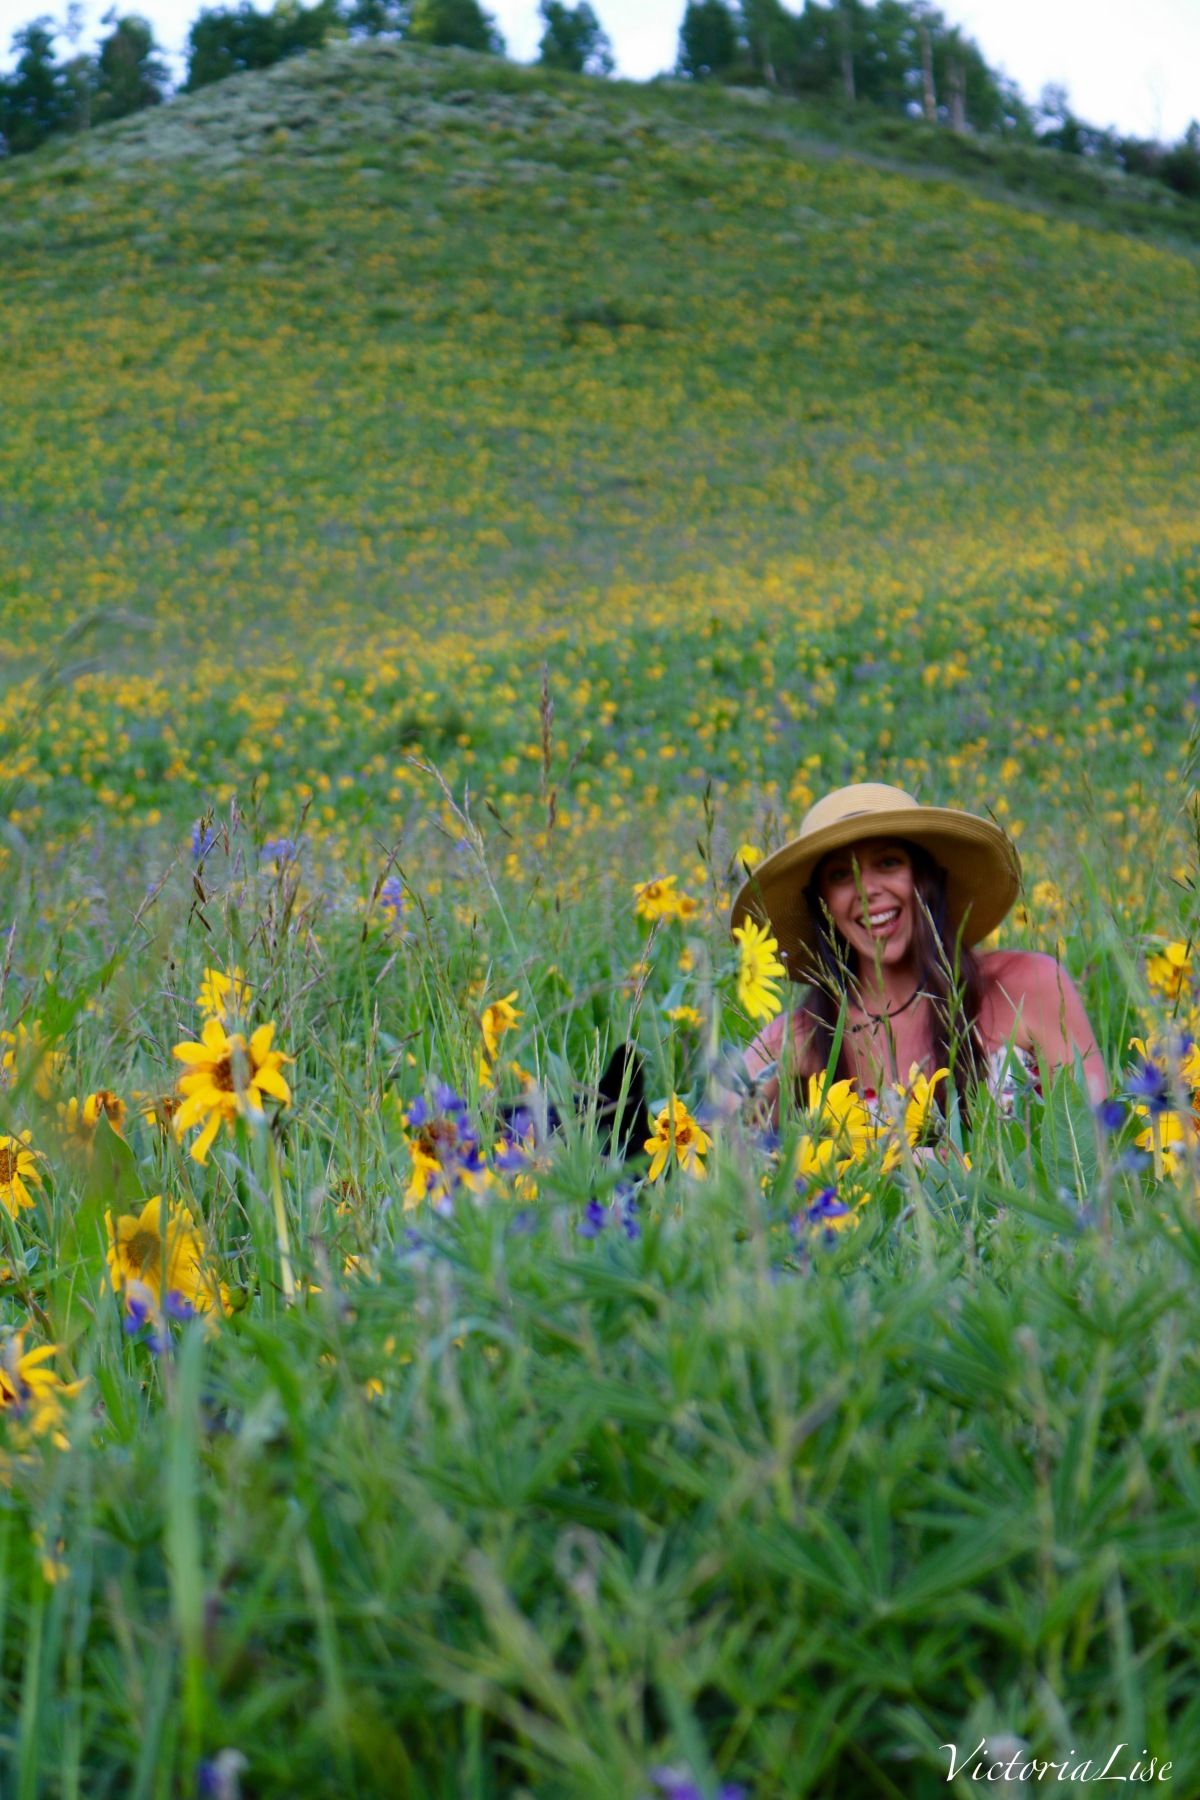 Victoria Lise laughing amongst Colorado wildflowers. Pure Joy.